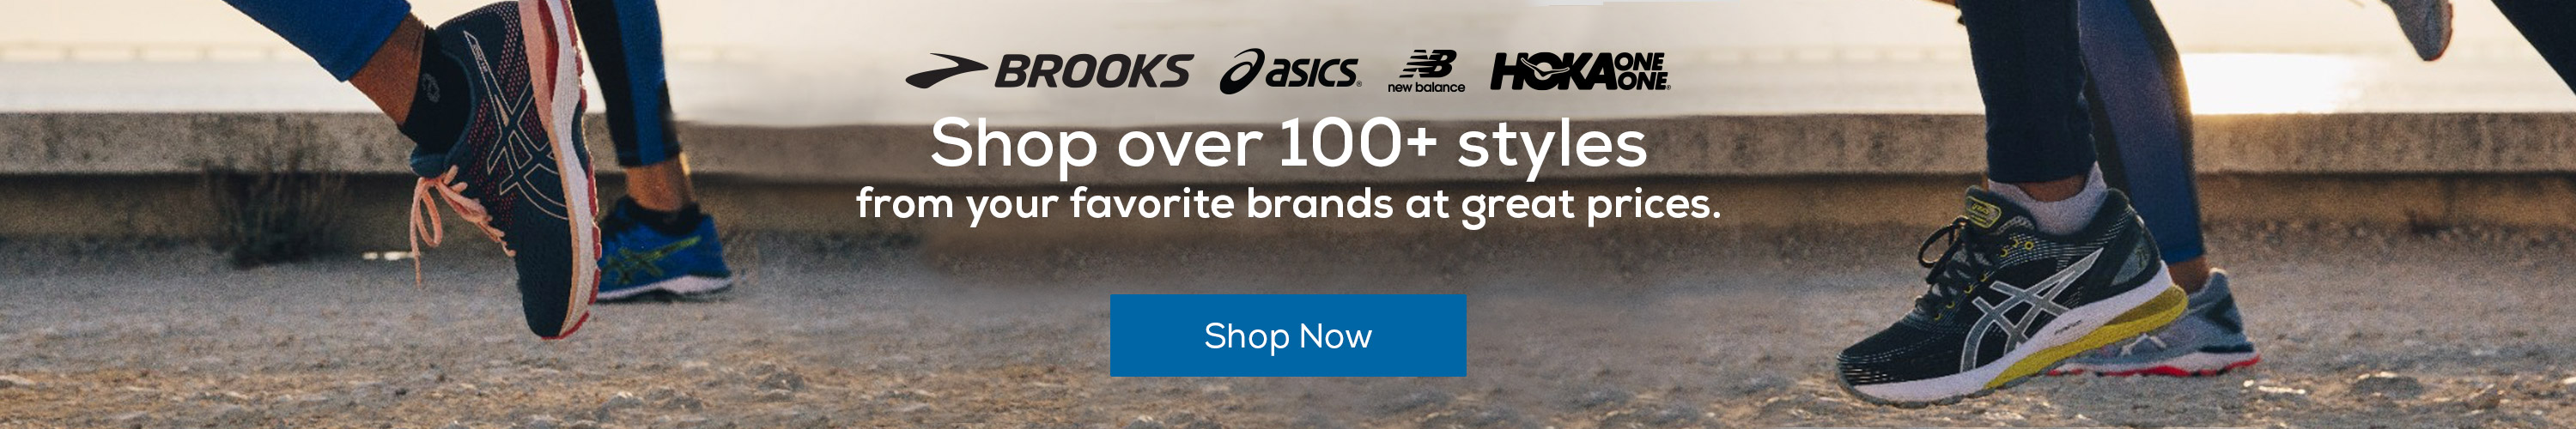 Shop over 100+ styles from your favorite brands at great prices.